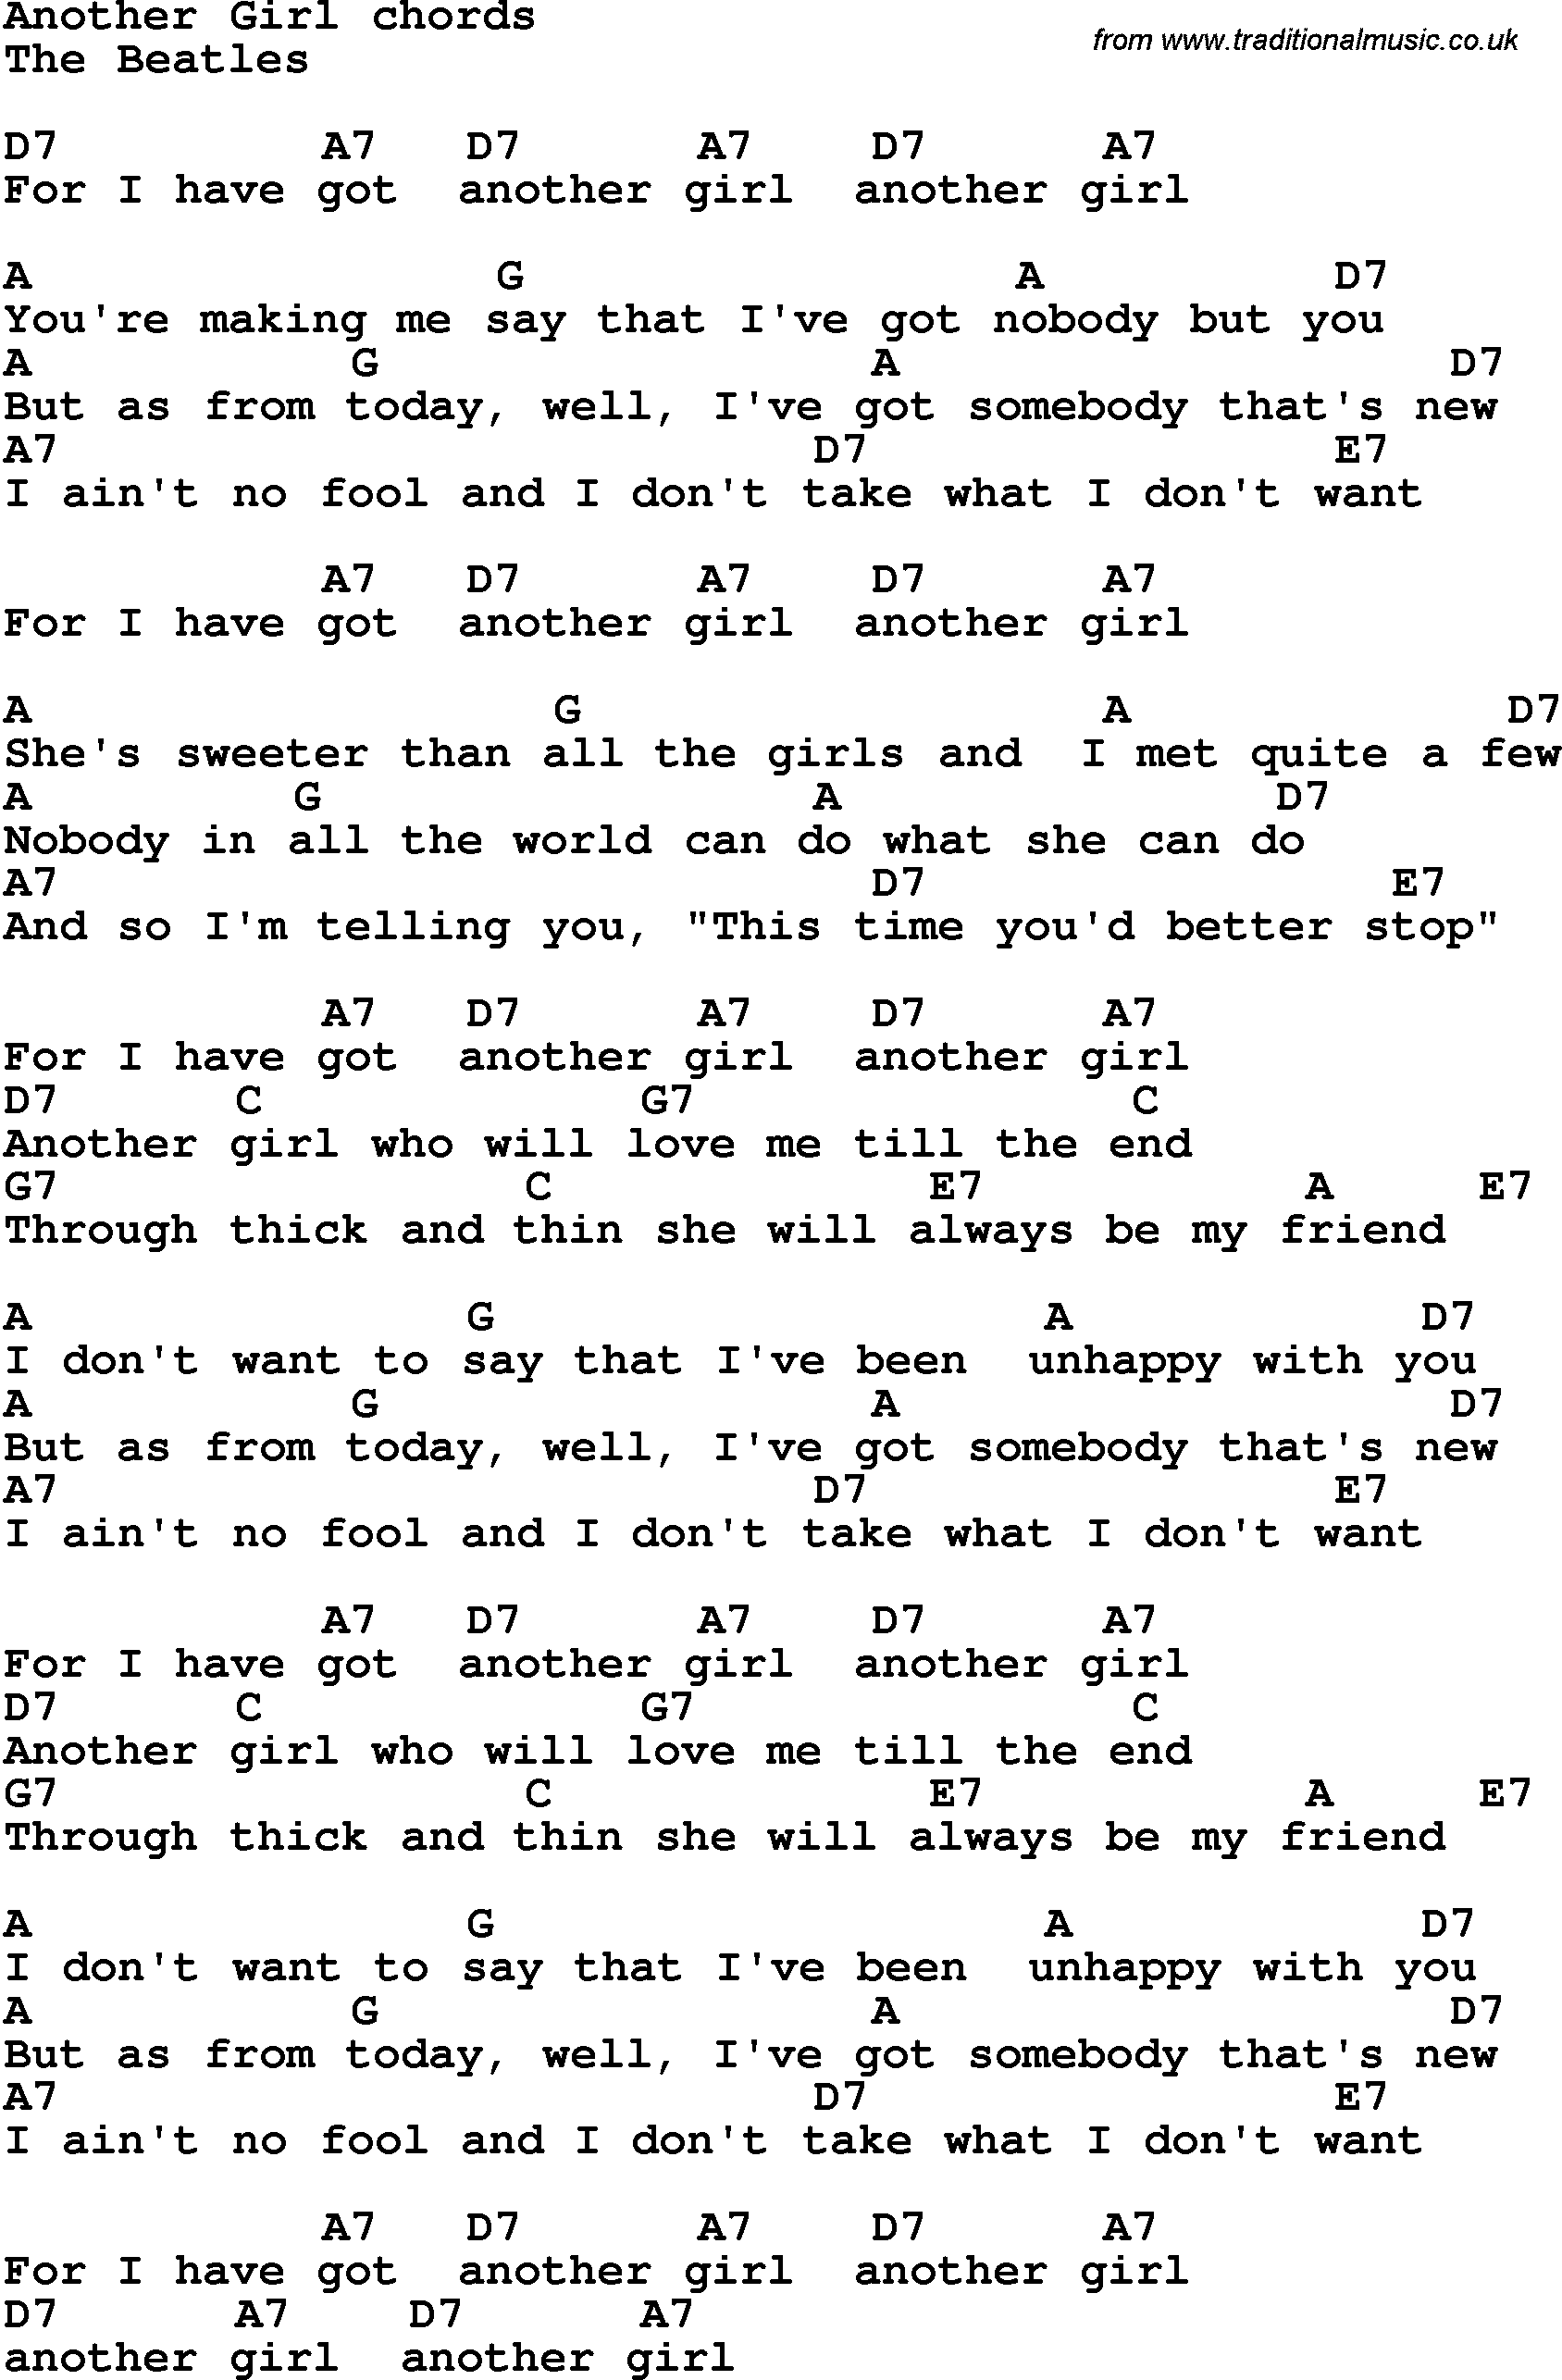 Songtext von The Beatles - Girl Lyrics